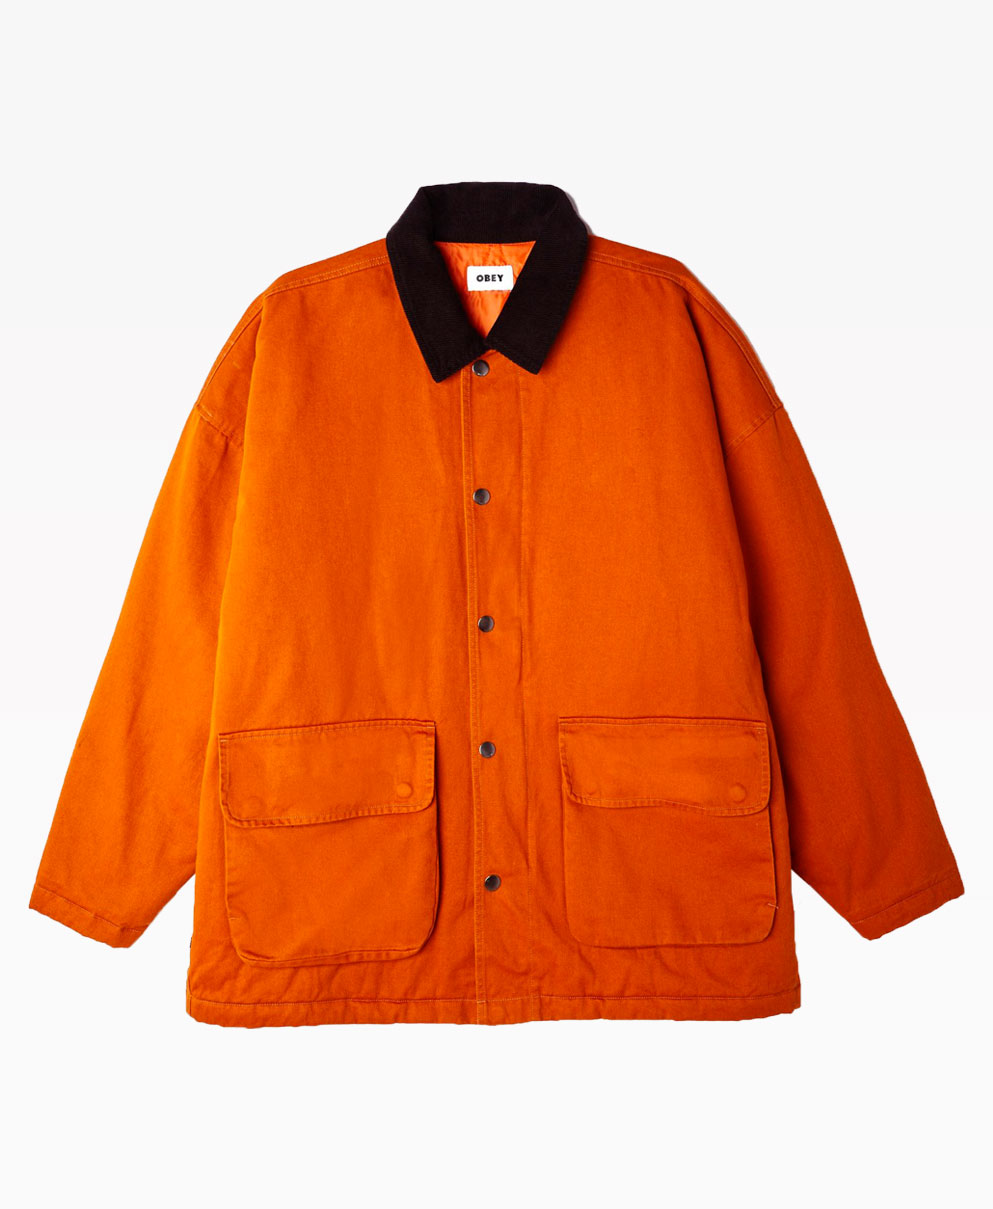 Obey Clothing Hunting Jacket Front